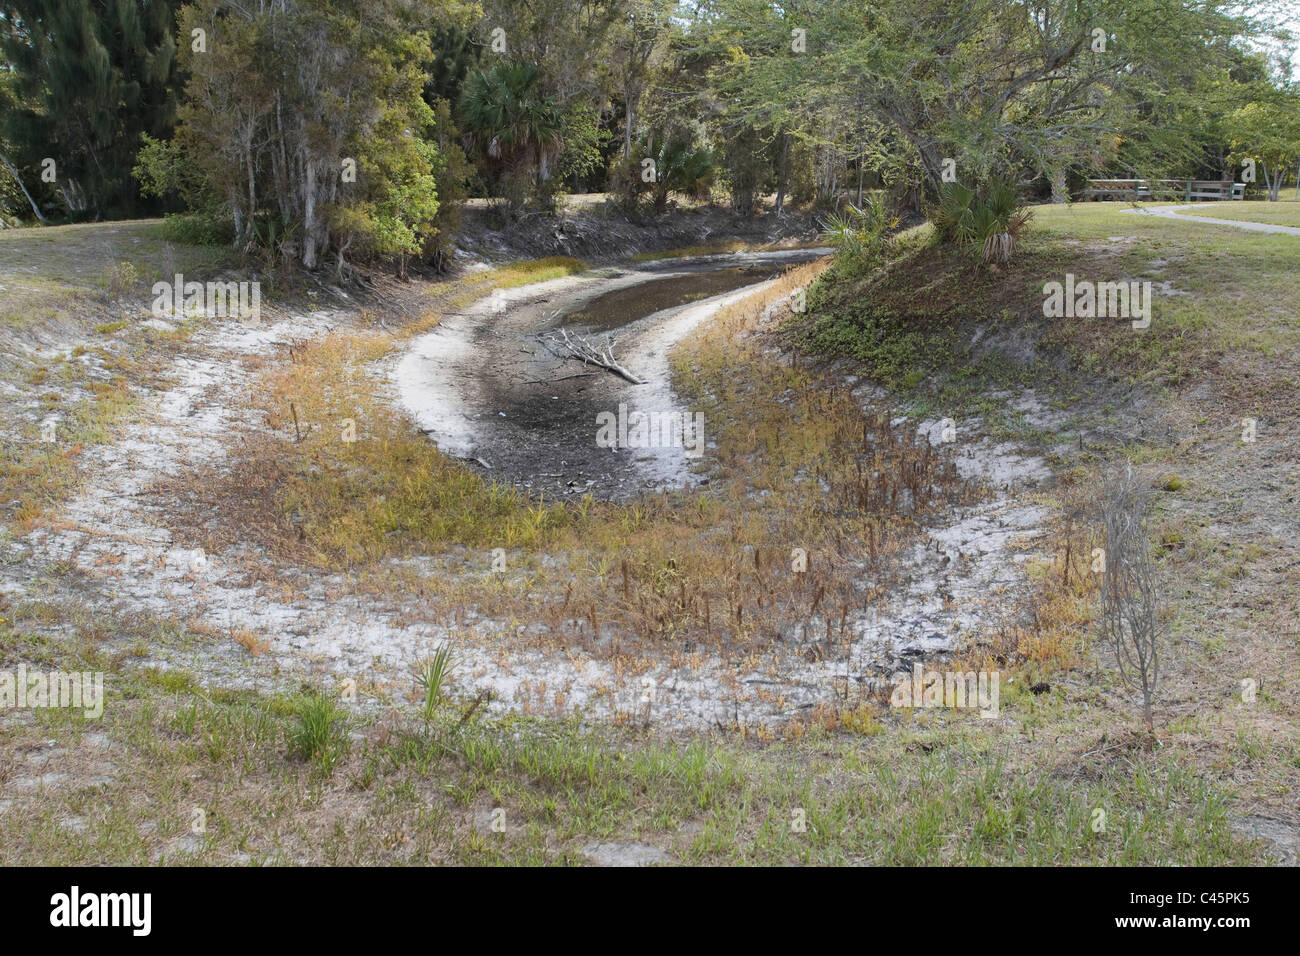 Local water storage pond dried out during drought South Florida USA - Stock Image